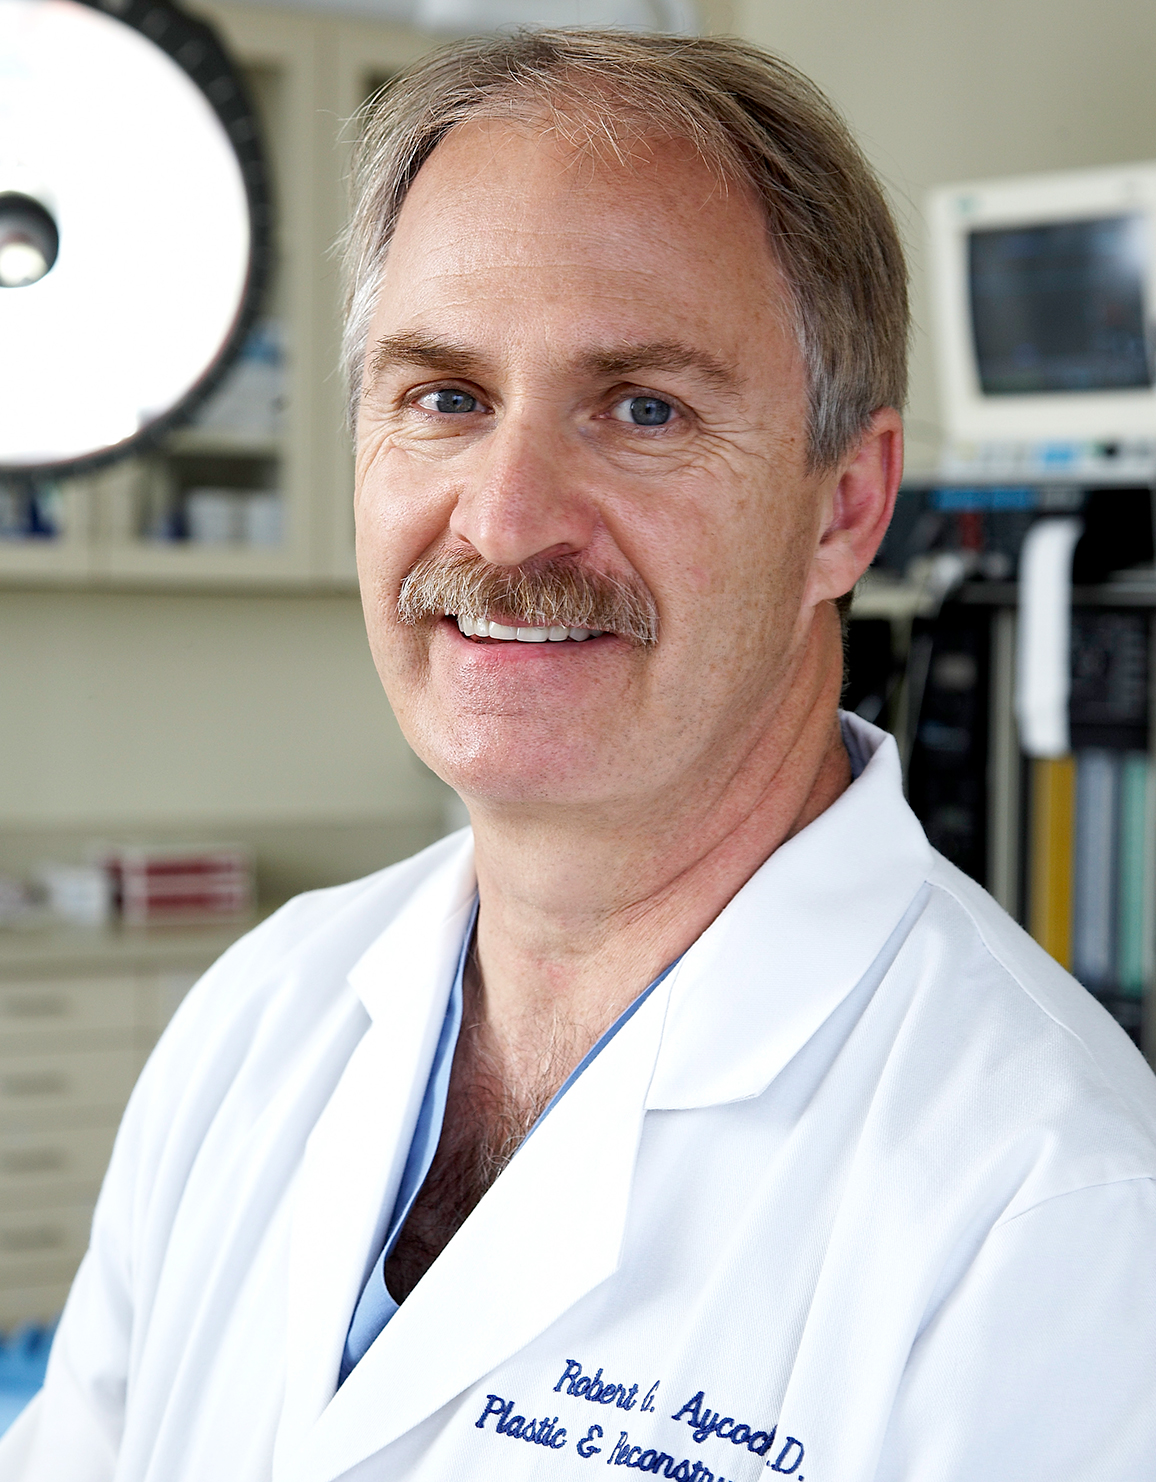 DR.Aycock-CALIFORNIA-PROFILE-PORTRAIT-BY-JONATHAN-R-BECKERMAN-PHOTOGRAPHY.jpg